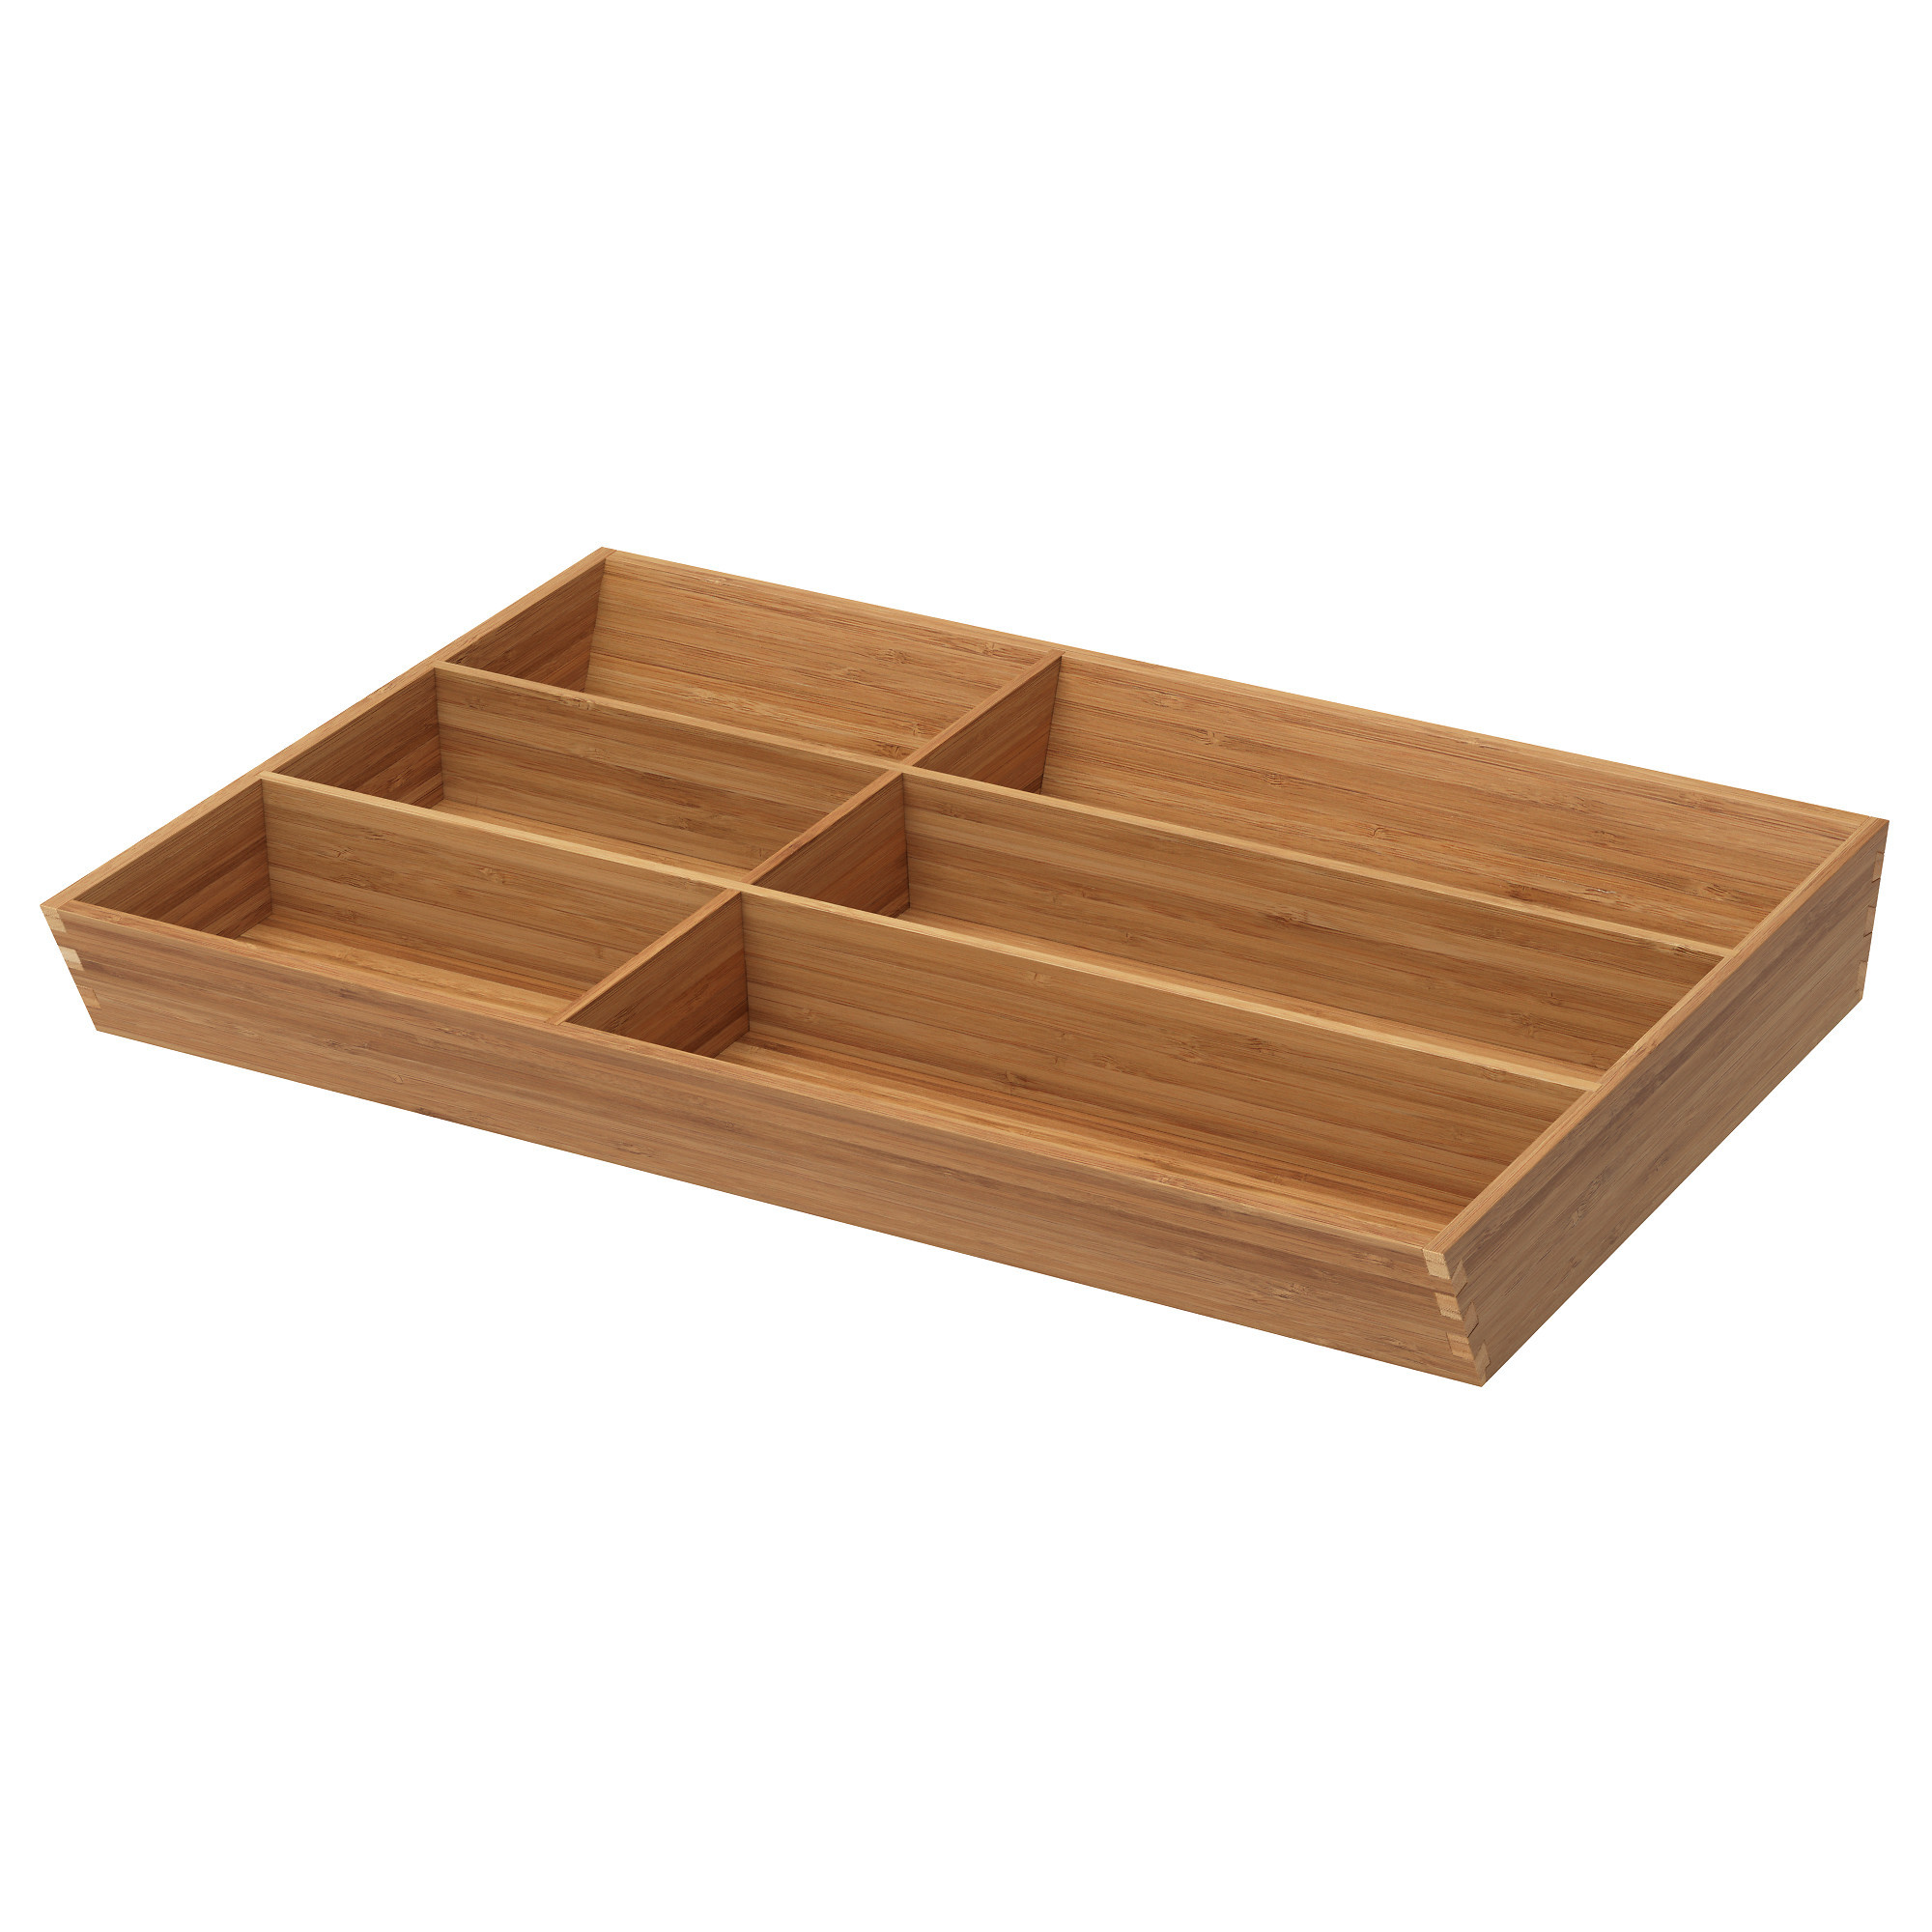 Kitchen Drawers Organizers kitchen drawer organizers - ikea